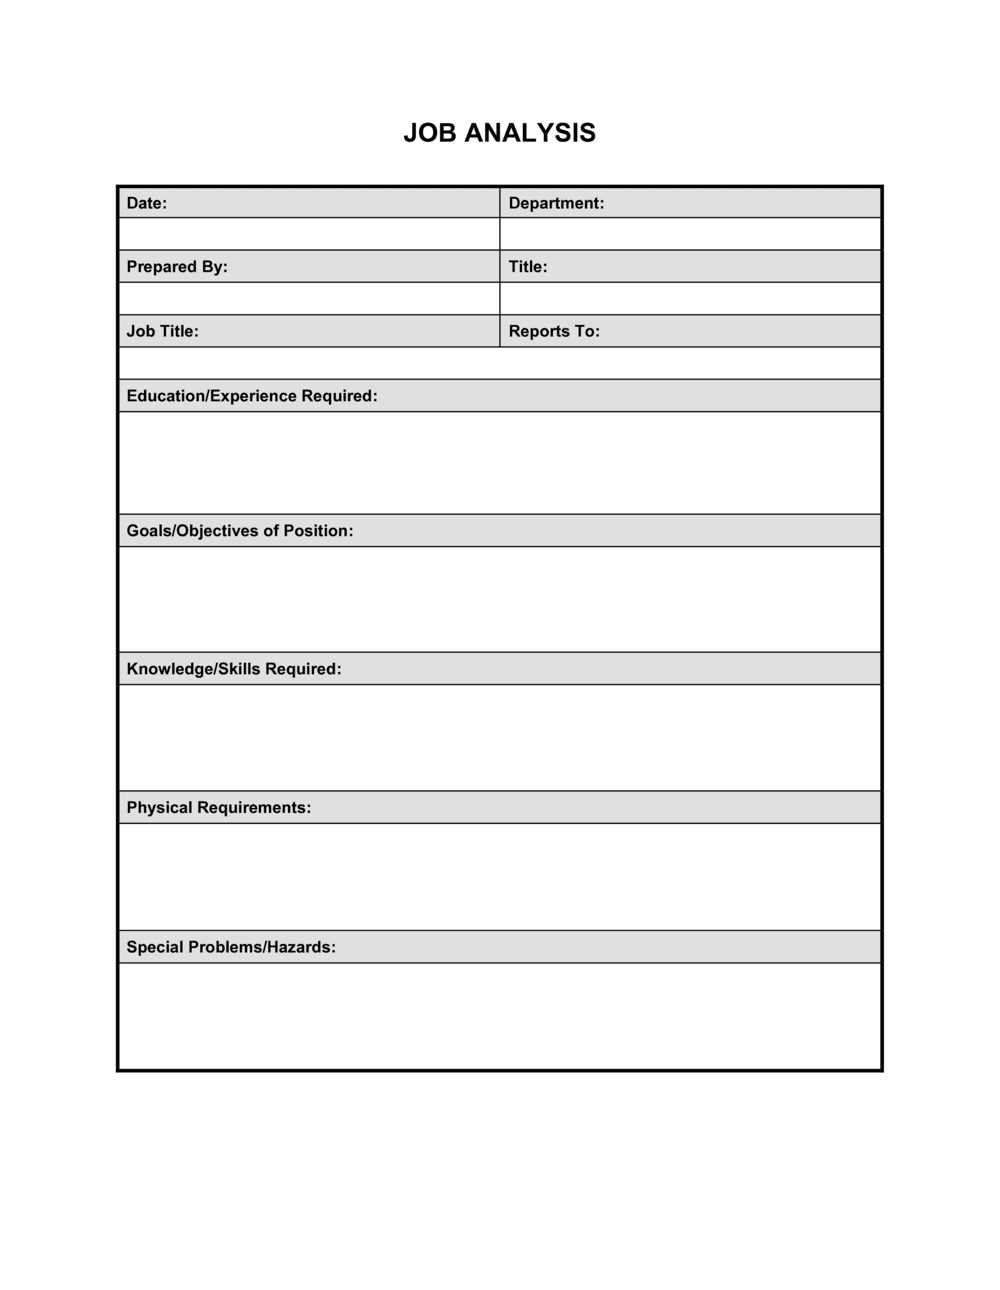 Business-in-a-Box's Job Analysis Template